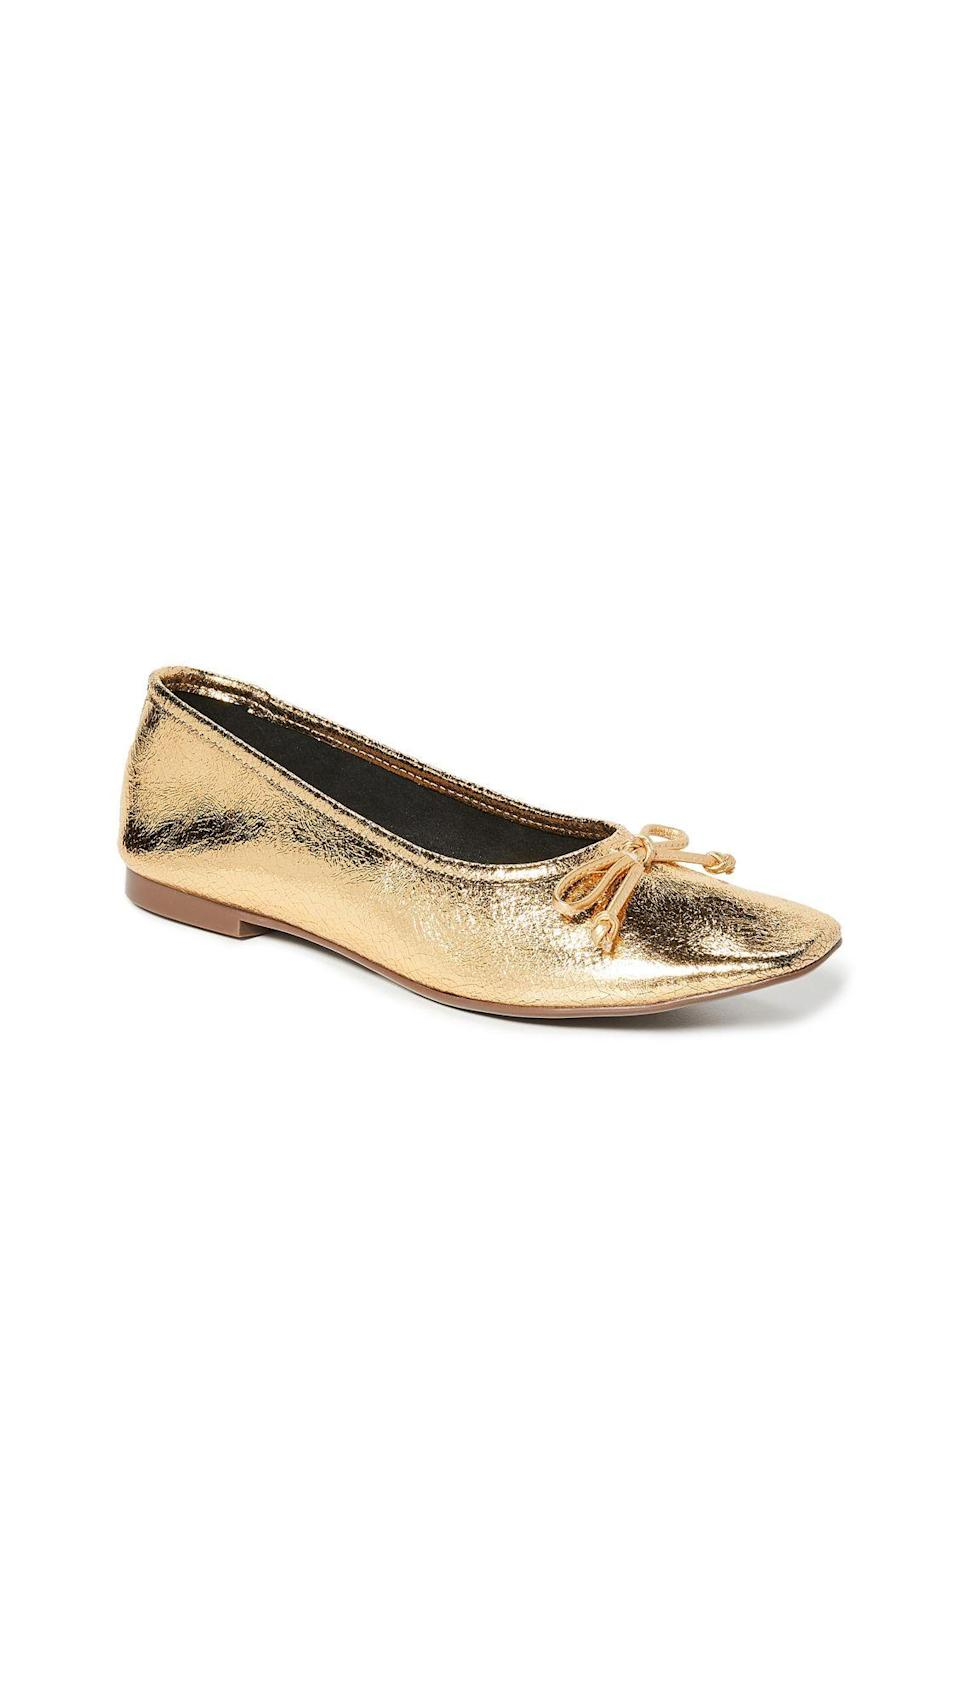 """<p><strong>Schutz</strong></p><p>shopbop.com</p><p><strong>$88.00</strong></p><p><a href=""""https://go.redirectingat.com?id=74968X1596630&url=https%3A%2F%2Fwww.shopbop.com%2Farissa-ballet-flats-schutz%2Fvp%2Fv%3D1%2F1577232790.htm&sref=https%3A%2F%2Fwww.marieclaire.com%2Ffashion%2Fg34126792%2Fspring-shoe-trends-2021%2F"""" rel=""""nofollow noopener"""" target=""""_blank"""" data-ylk=""""slk:Shop Now"""" class=""""link rapid-noclick-resp"""">Shop Now</a></p><p>This cracked gold is somehow neutral enough to go with leggings and a sweater but can easily transition to an evening slipper with a cocktail dress.</p>"""